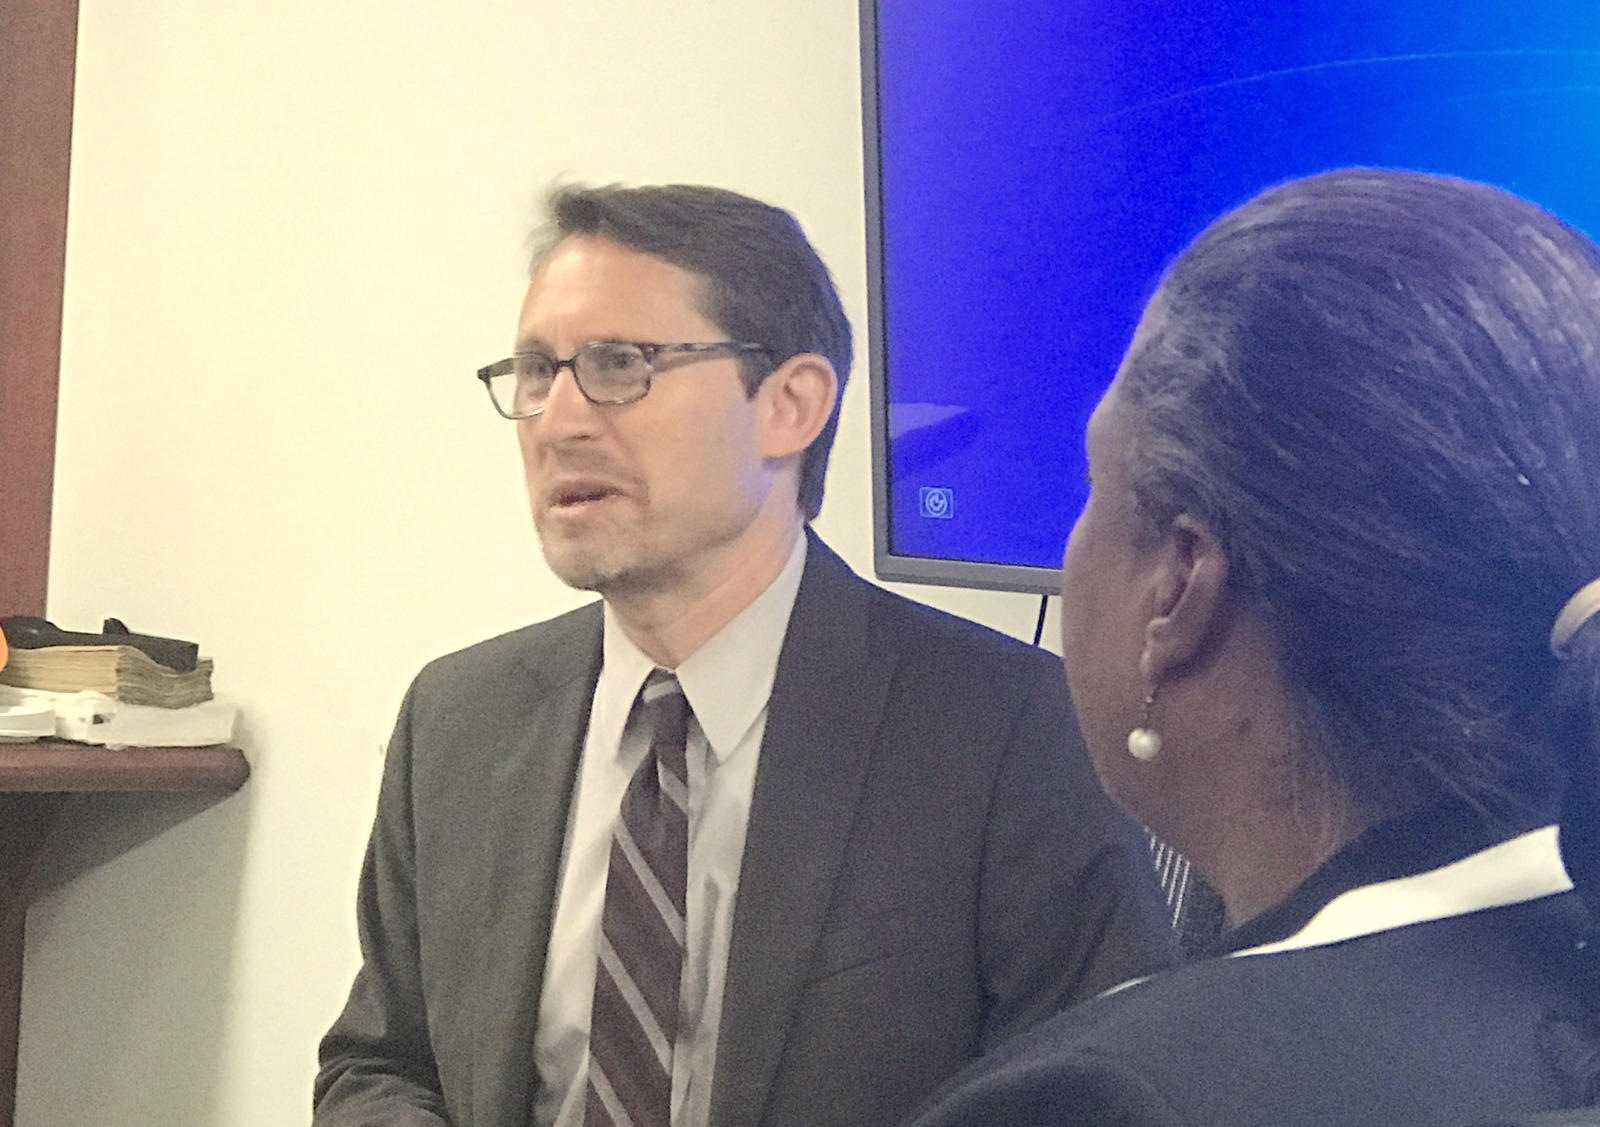 Housing Commissioner Michael Braverman called on the inclusonary board to get